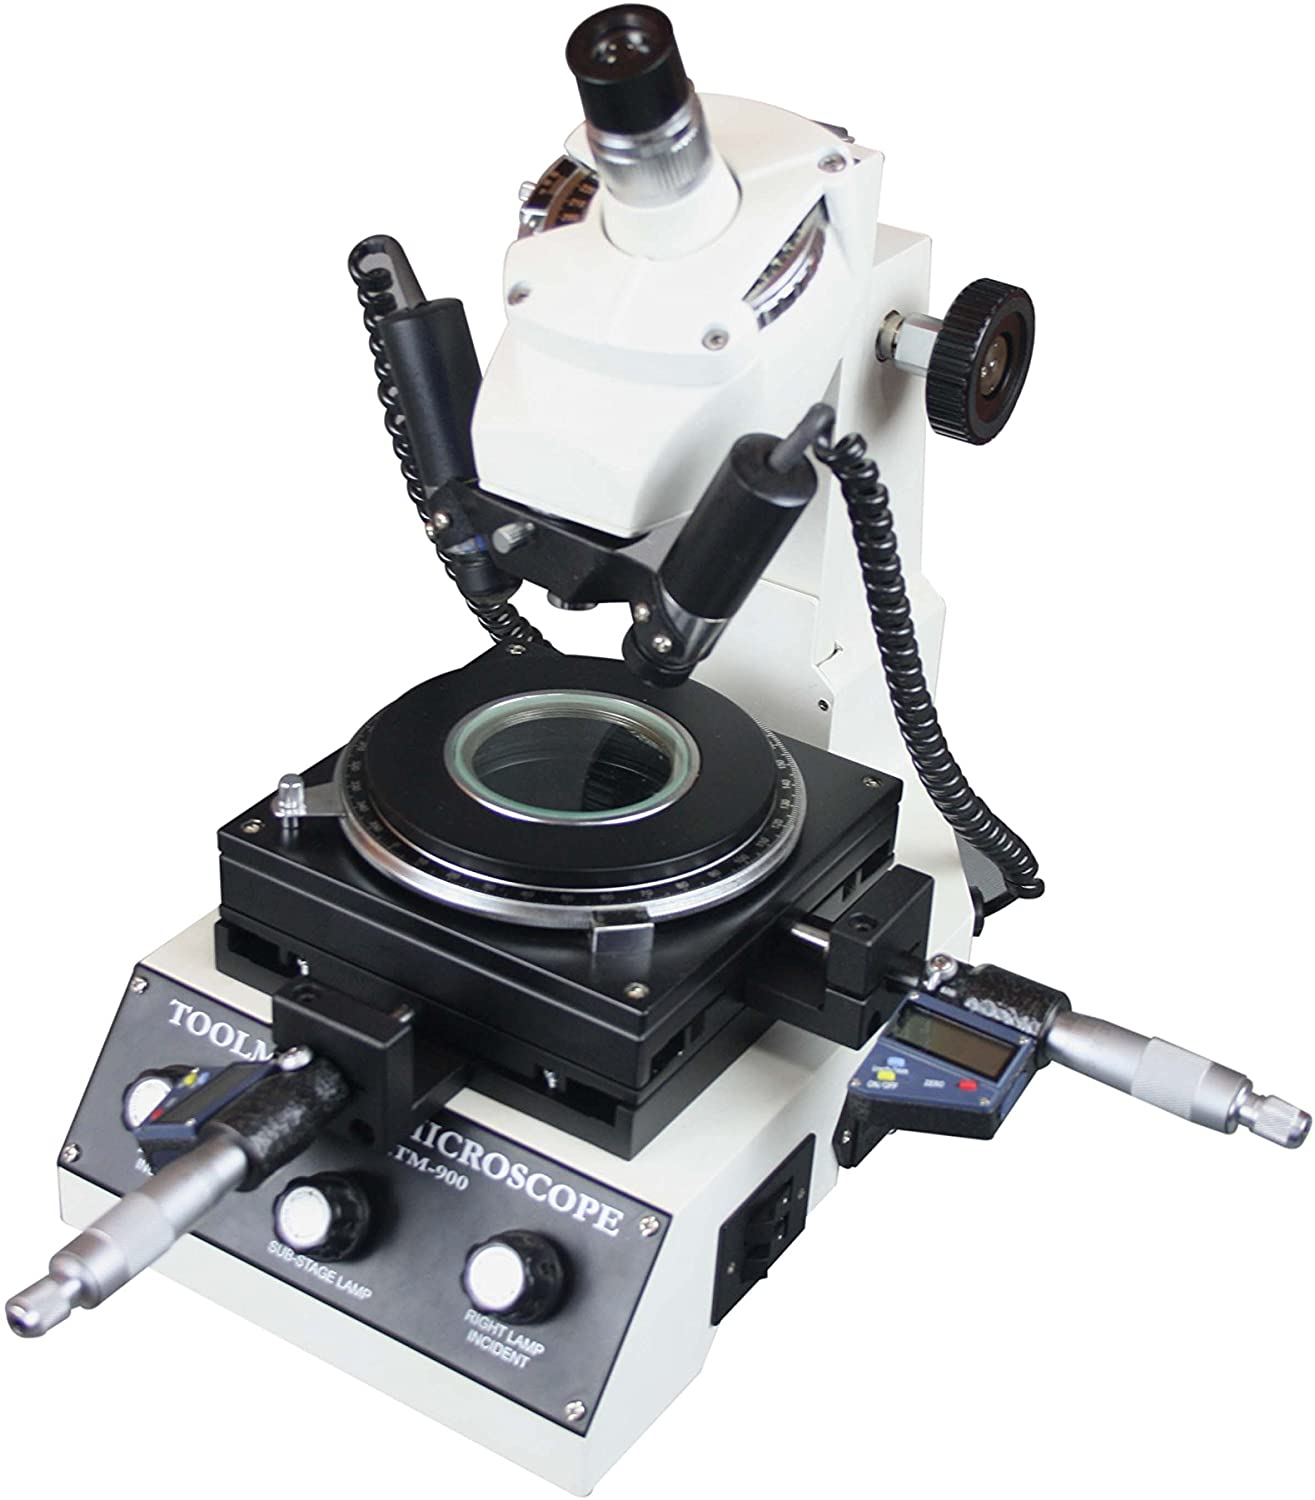 Radical Highly Precise Toolmakers Angle & Linear Industrial Measuring Microscope - Digital Micrometer 1um 0-25mm. mm-inch